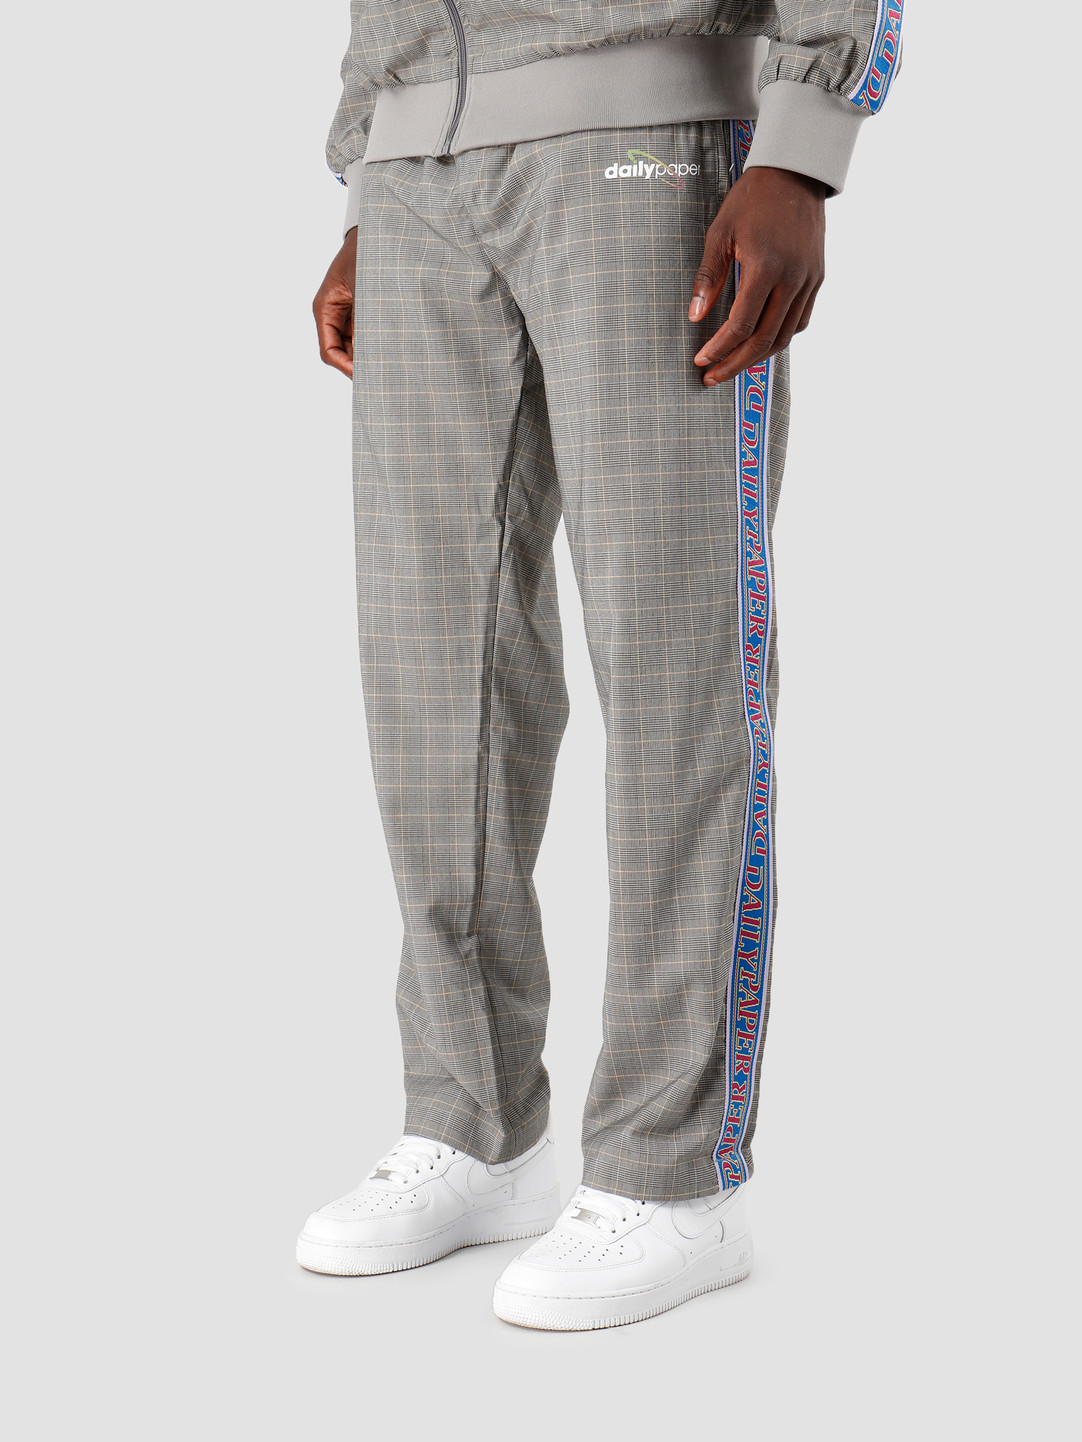 Daily Paper Daily Paper Getape Pants Grey/Yellow Check 19F1PA07-01